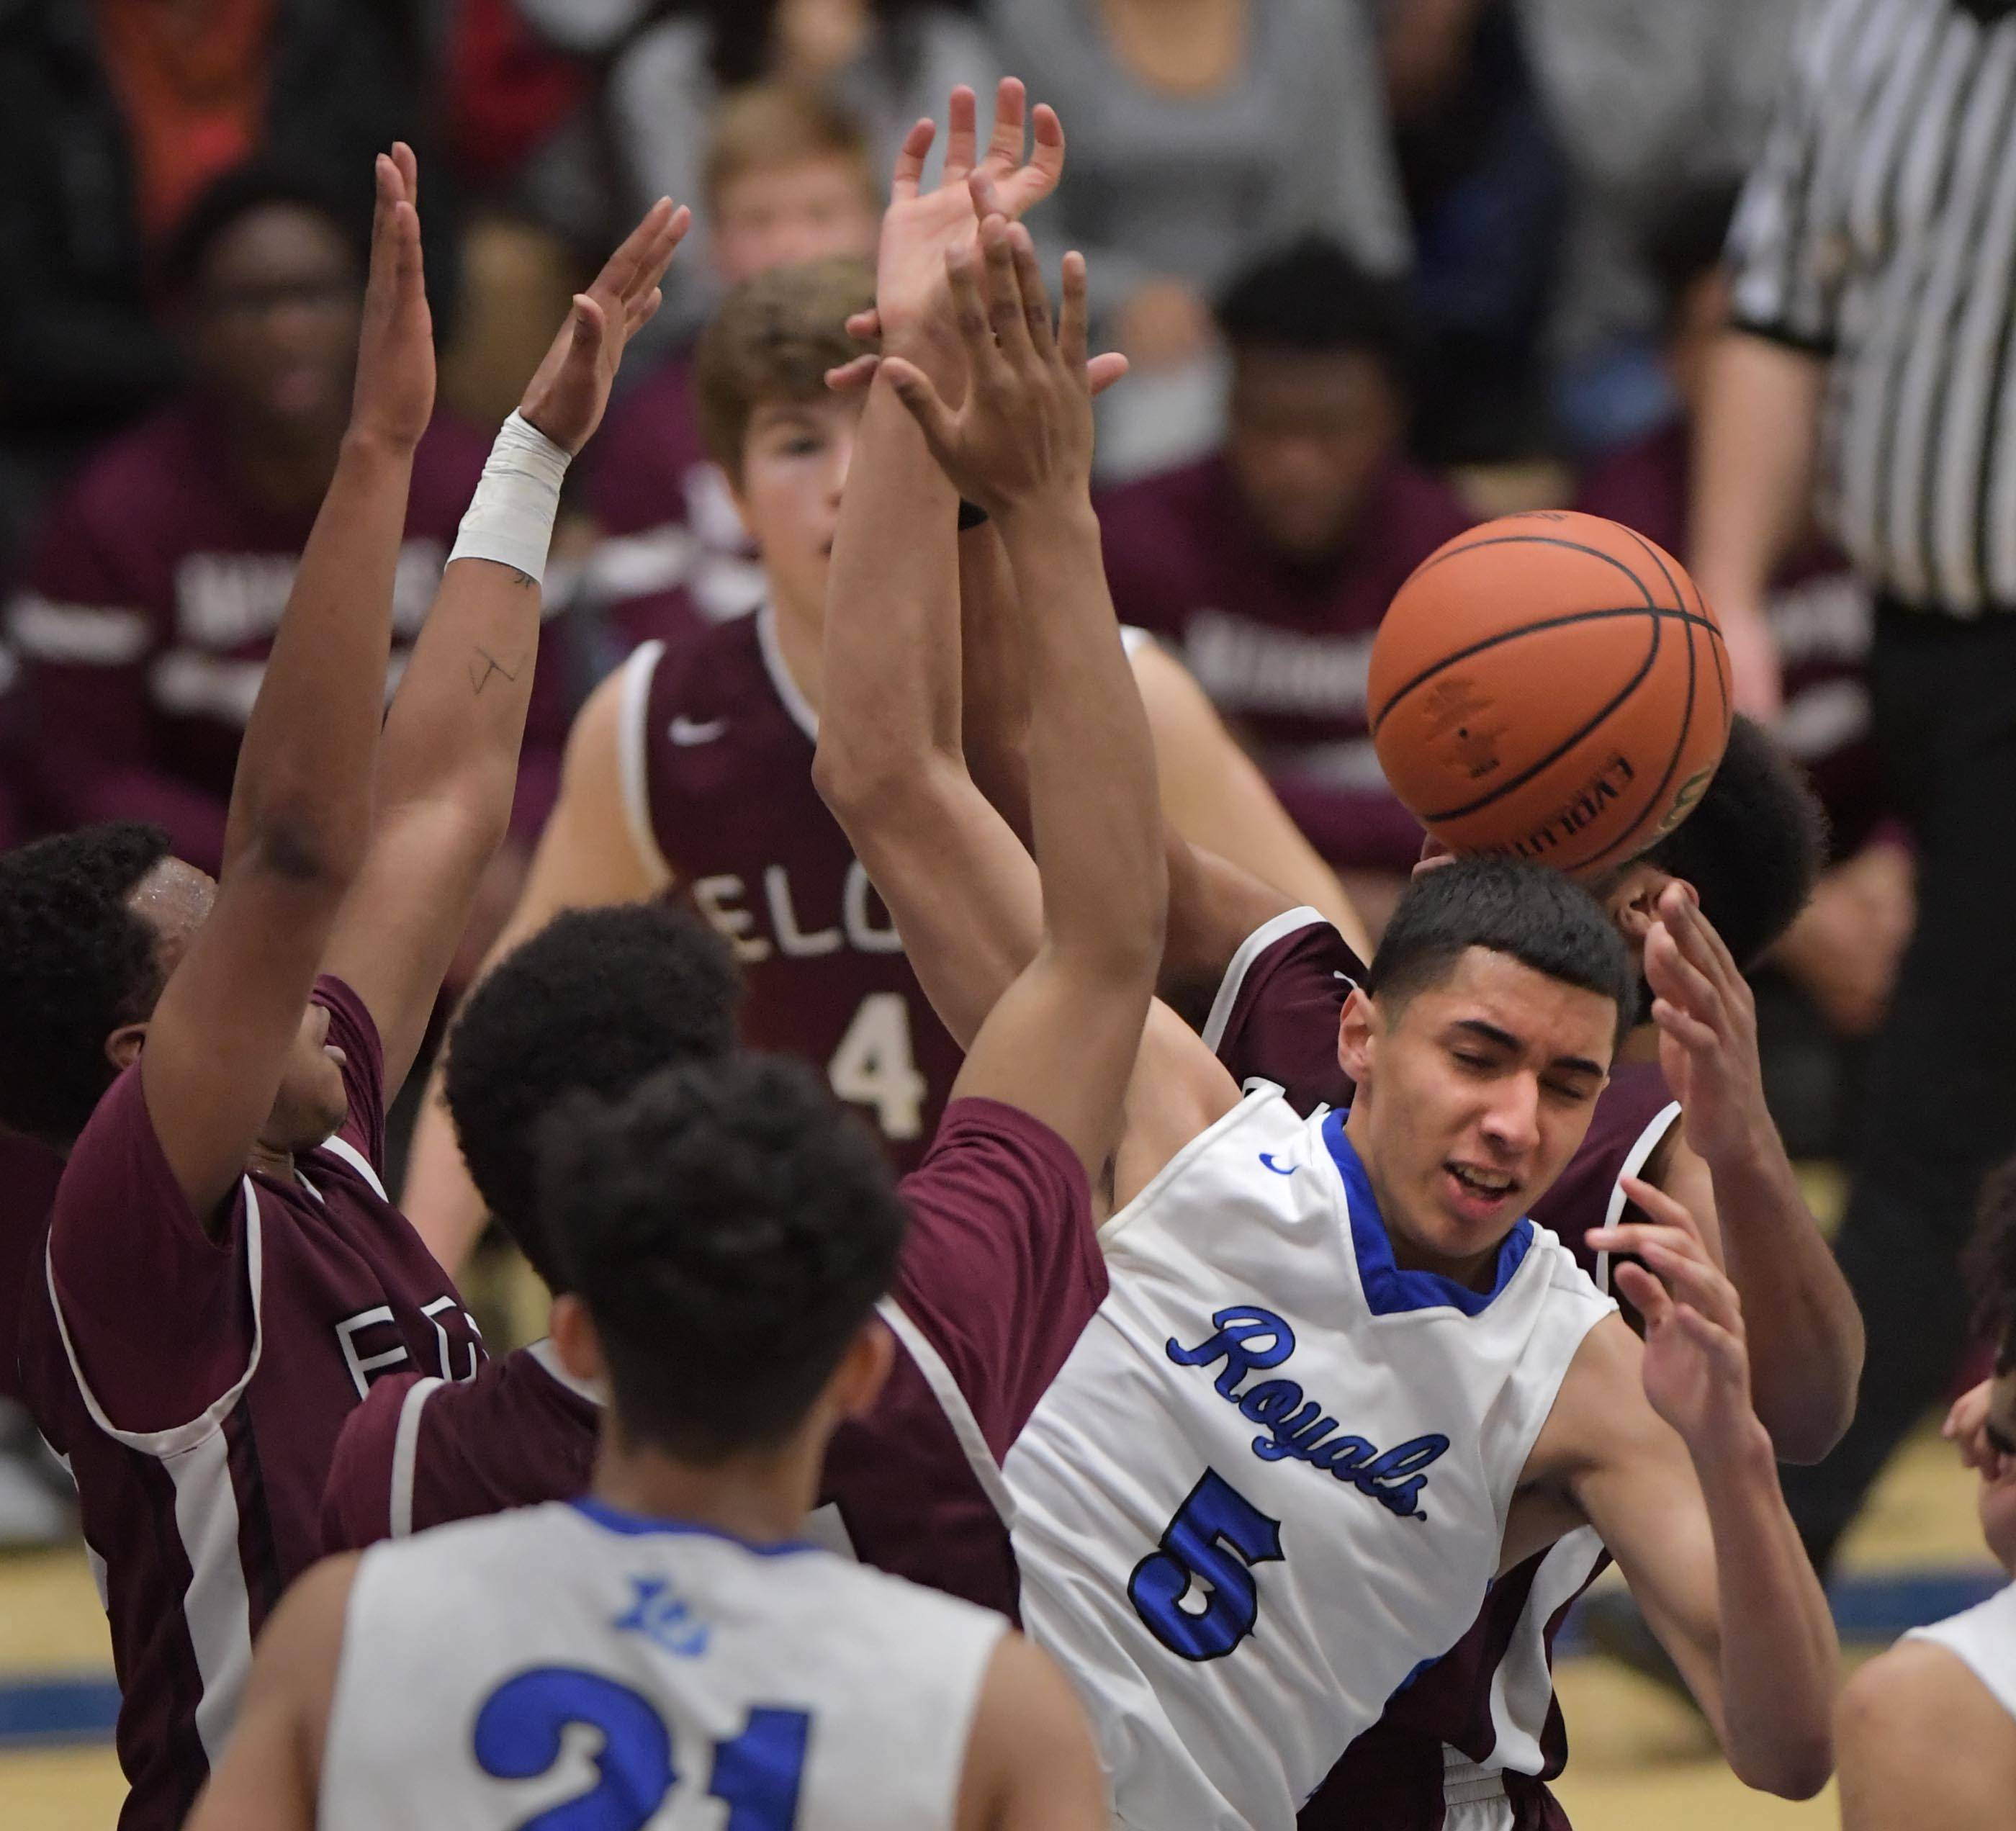 Larkin's Victor Perez loses the ball in a crowd of Elgin defenders Tuesday in the St. Charles North boys basketball regional game.